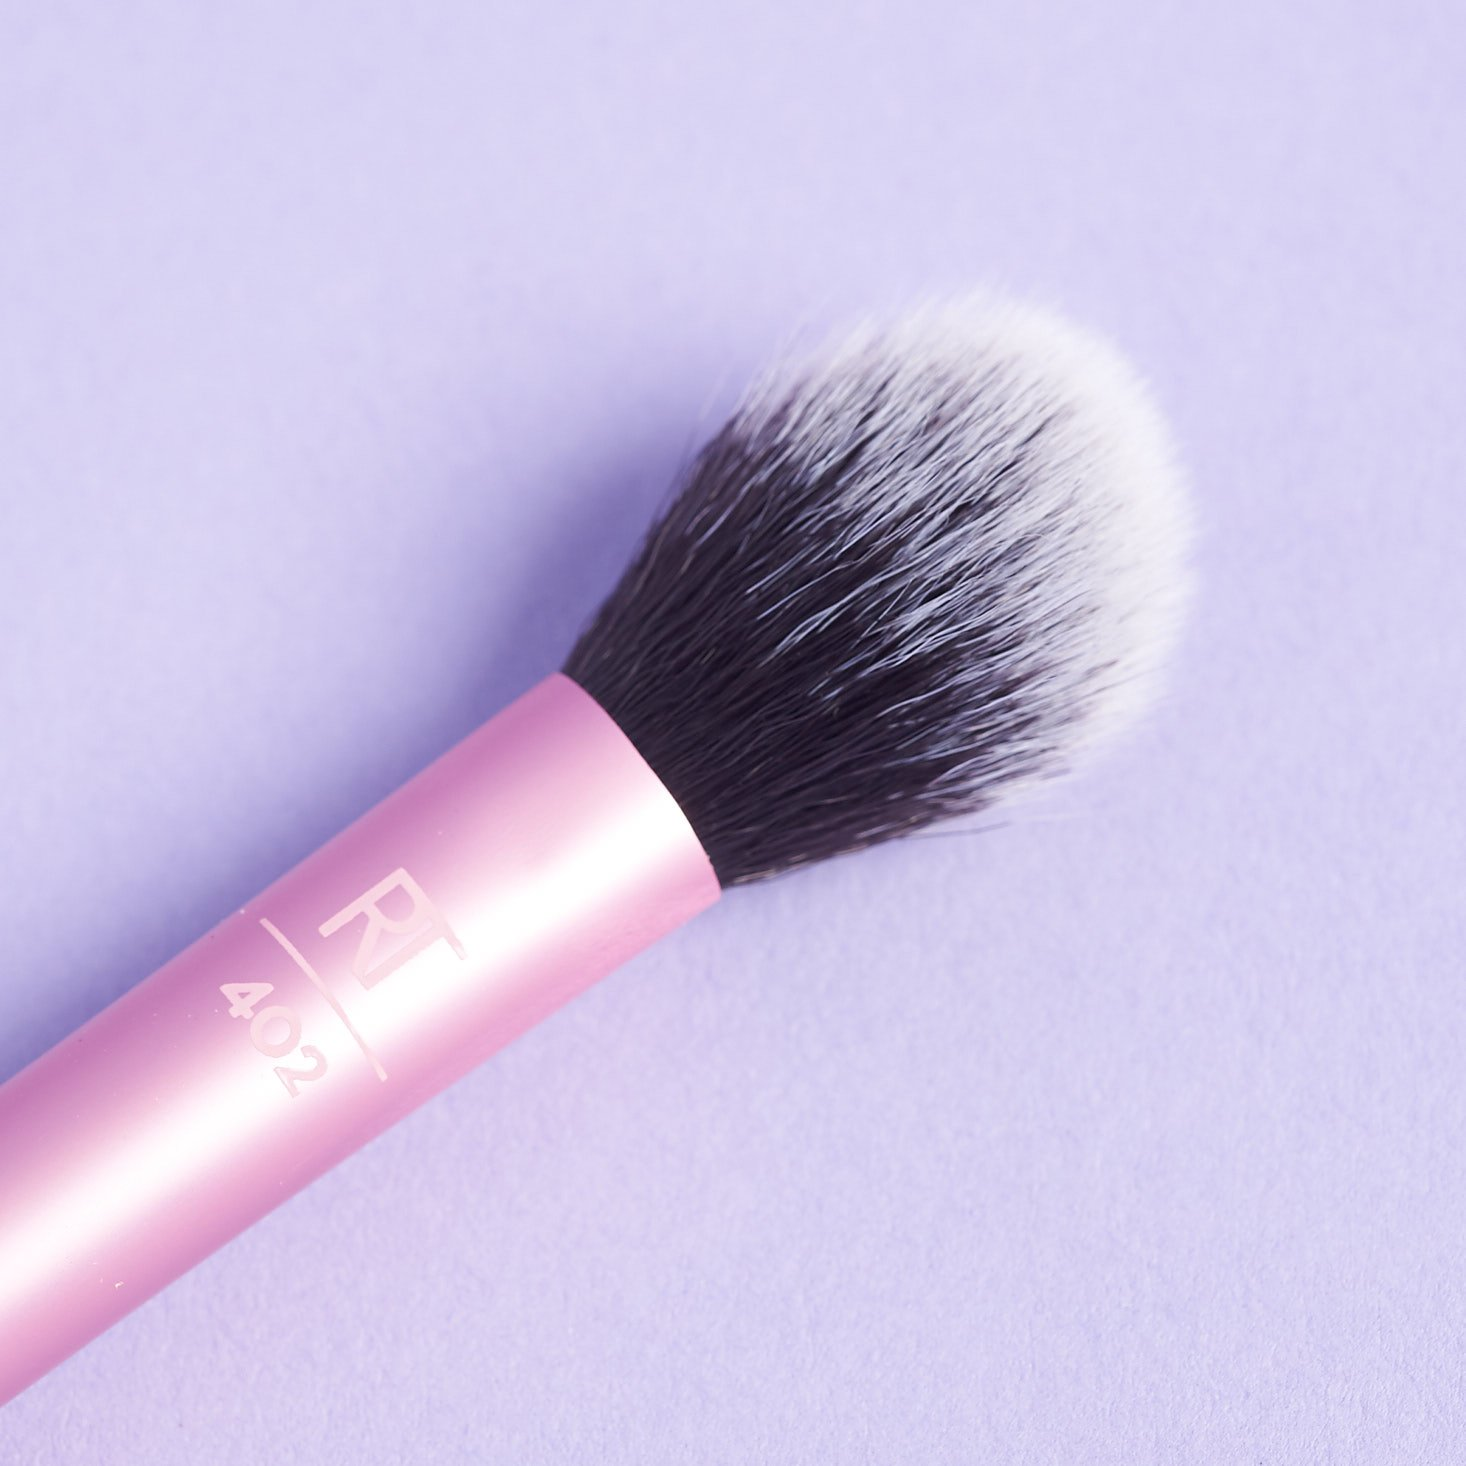 close up of Real Techniques Setting Brush head